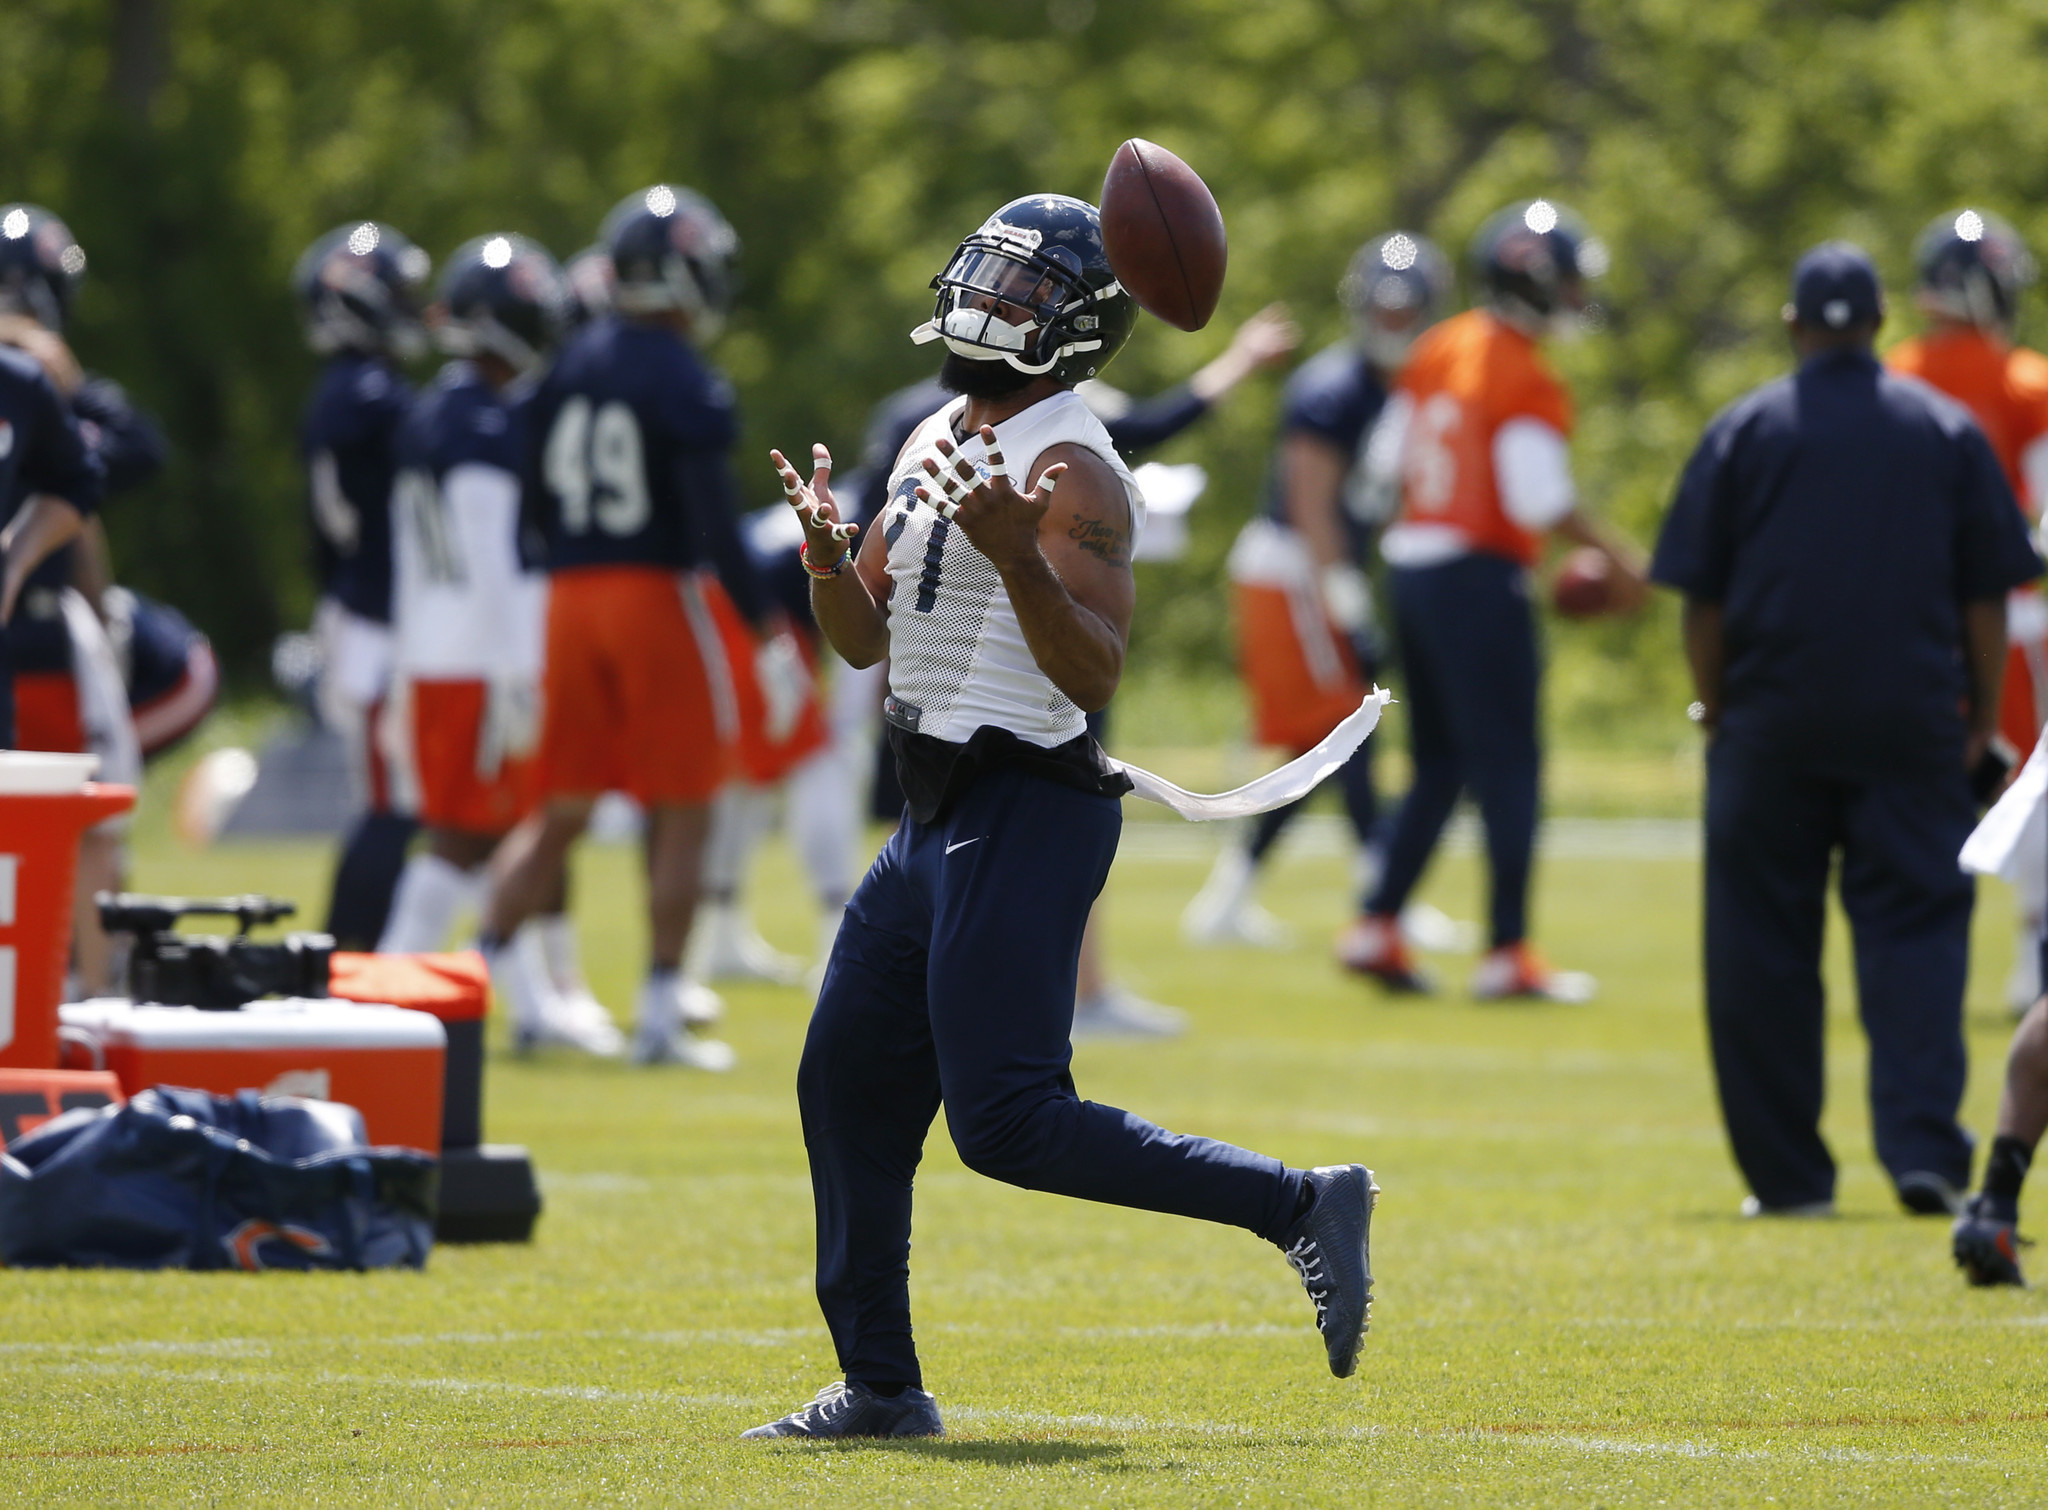 Ct-safeties-bears-camp-preview-spt-0721-20170720